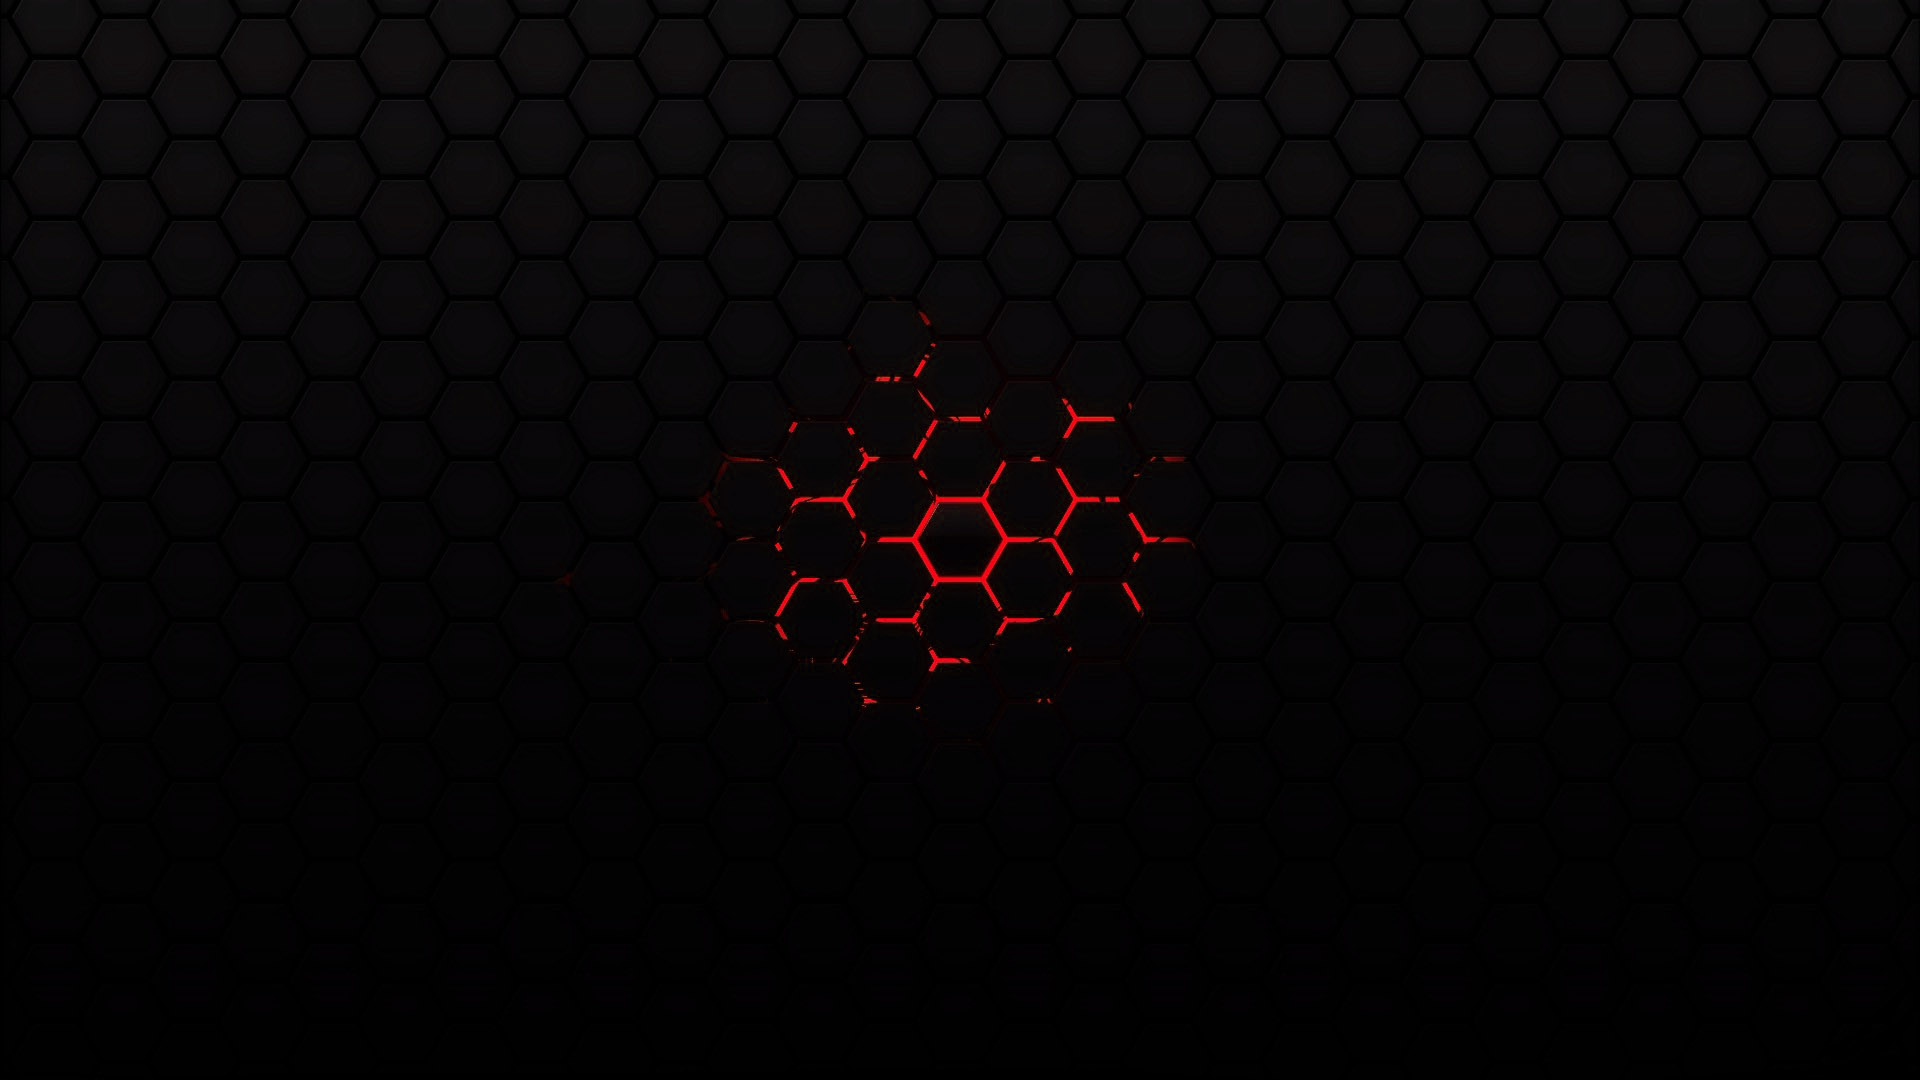 Black Background Hd Wallpaper 24: Red And Black Background Picture 24 Desktop Background